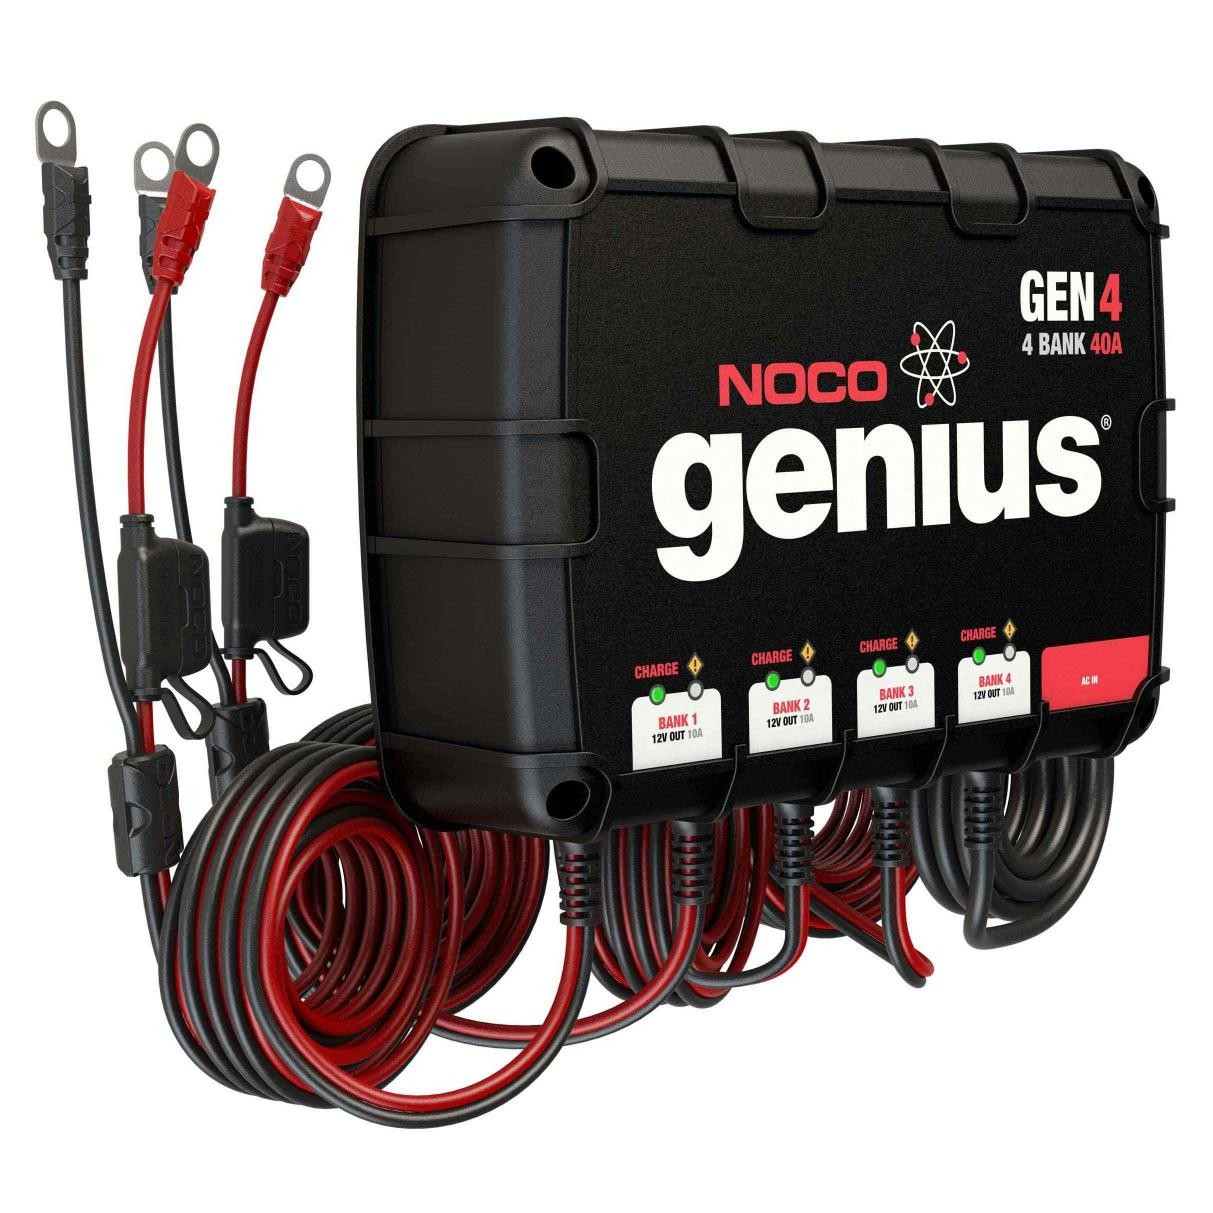 Noco 4 Bank 40a On Board Battery Charger Gen4 Marine Ac Wiring Prevnext